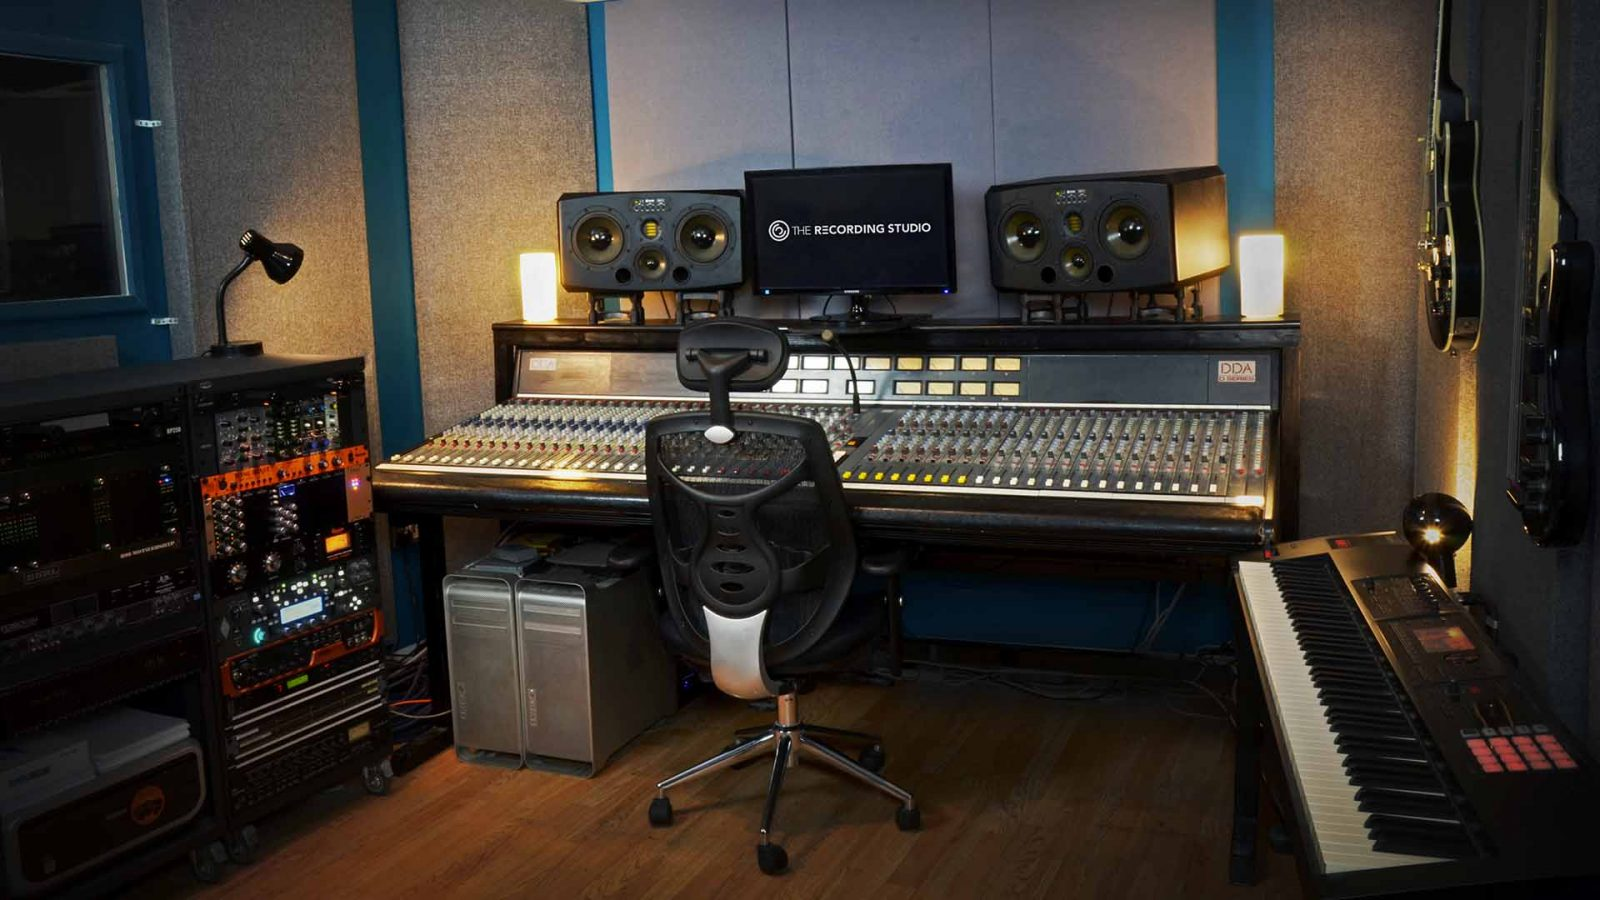 The Recording Studio London control room dda 48 channel analogue console adam monitors piano keyboard